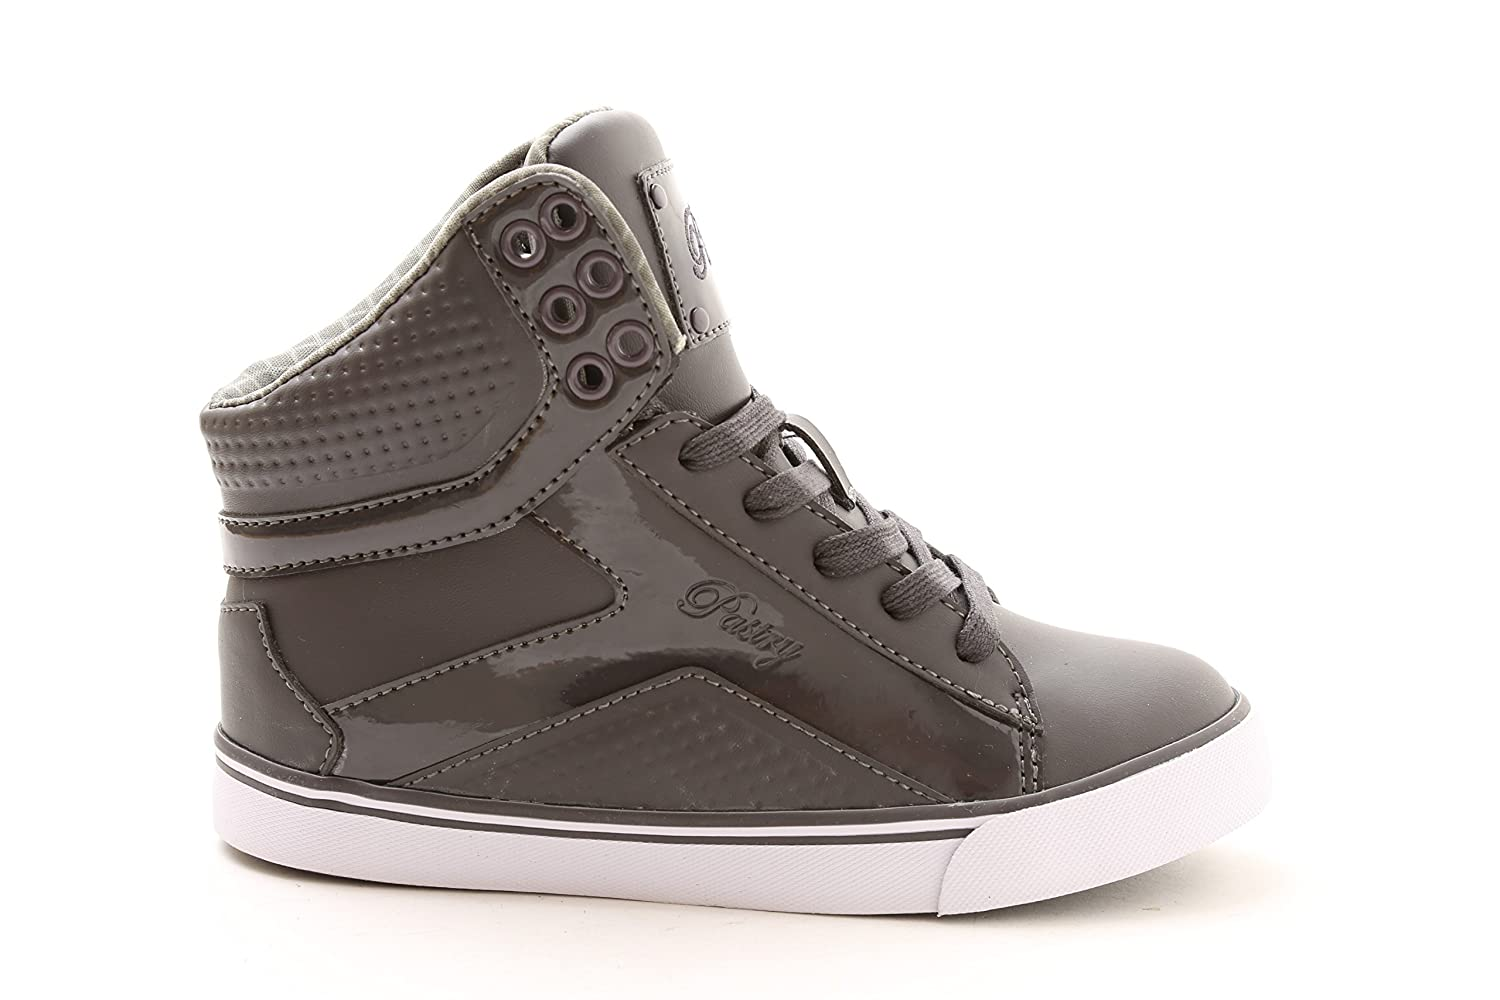 Pastry POP Tart Grid Adult Sneaker B017RQUK9K Size 11|Charcoal